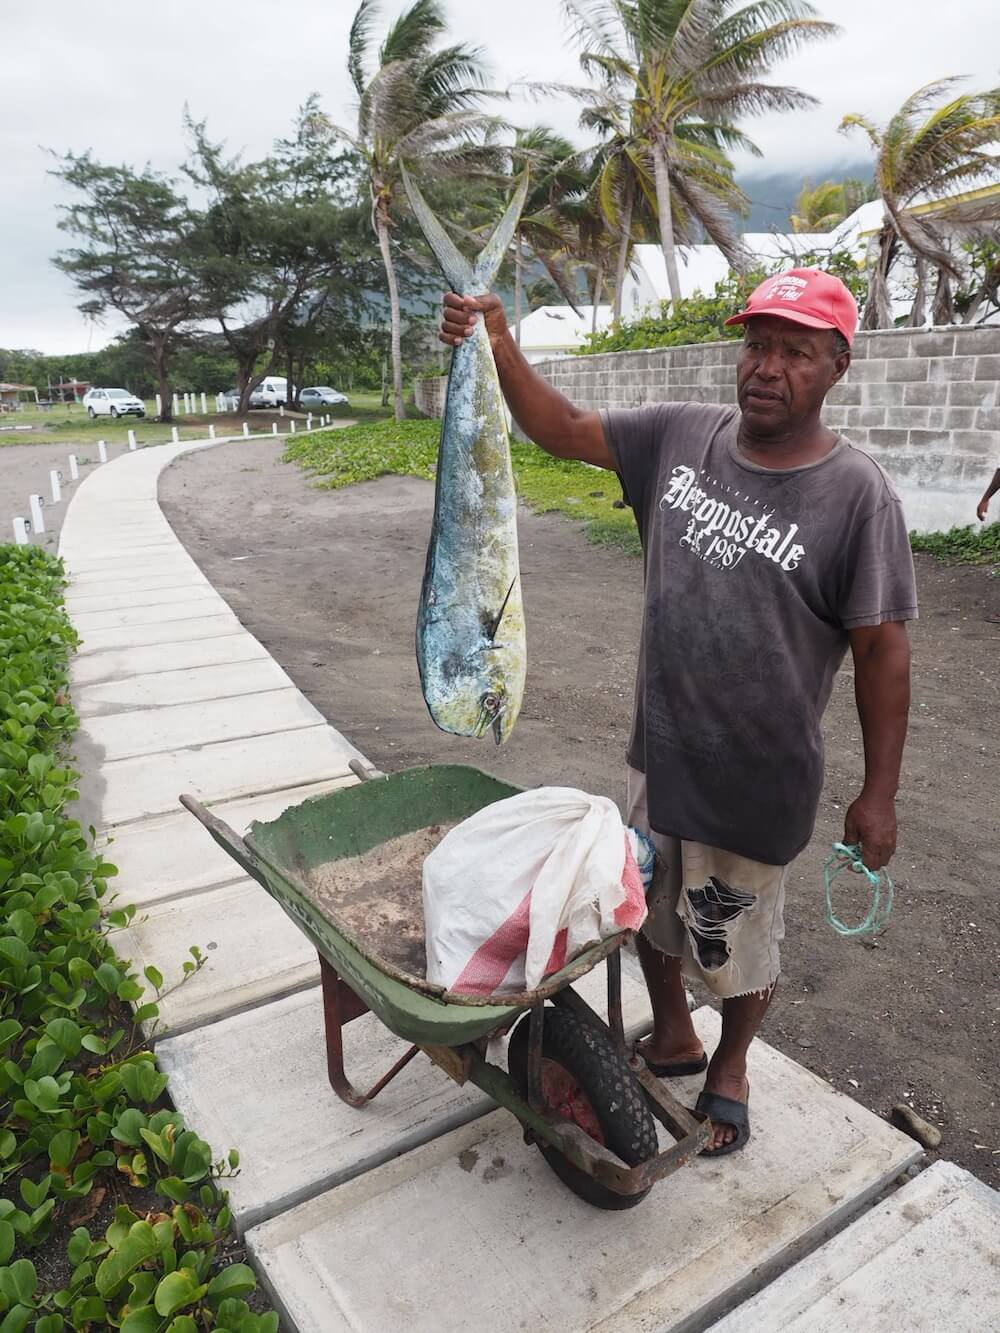 Food to eat in St Kitts